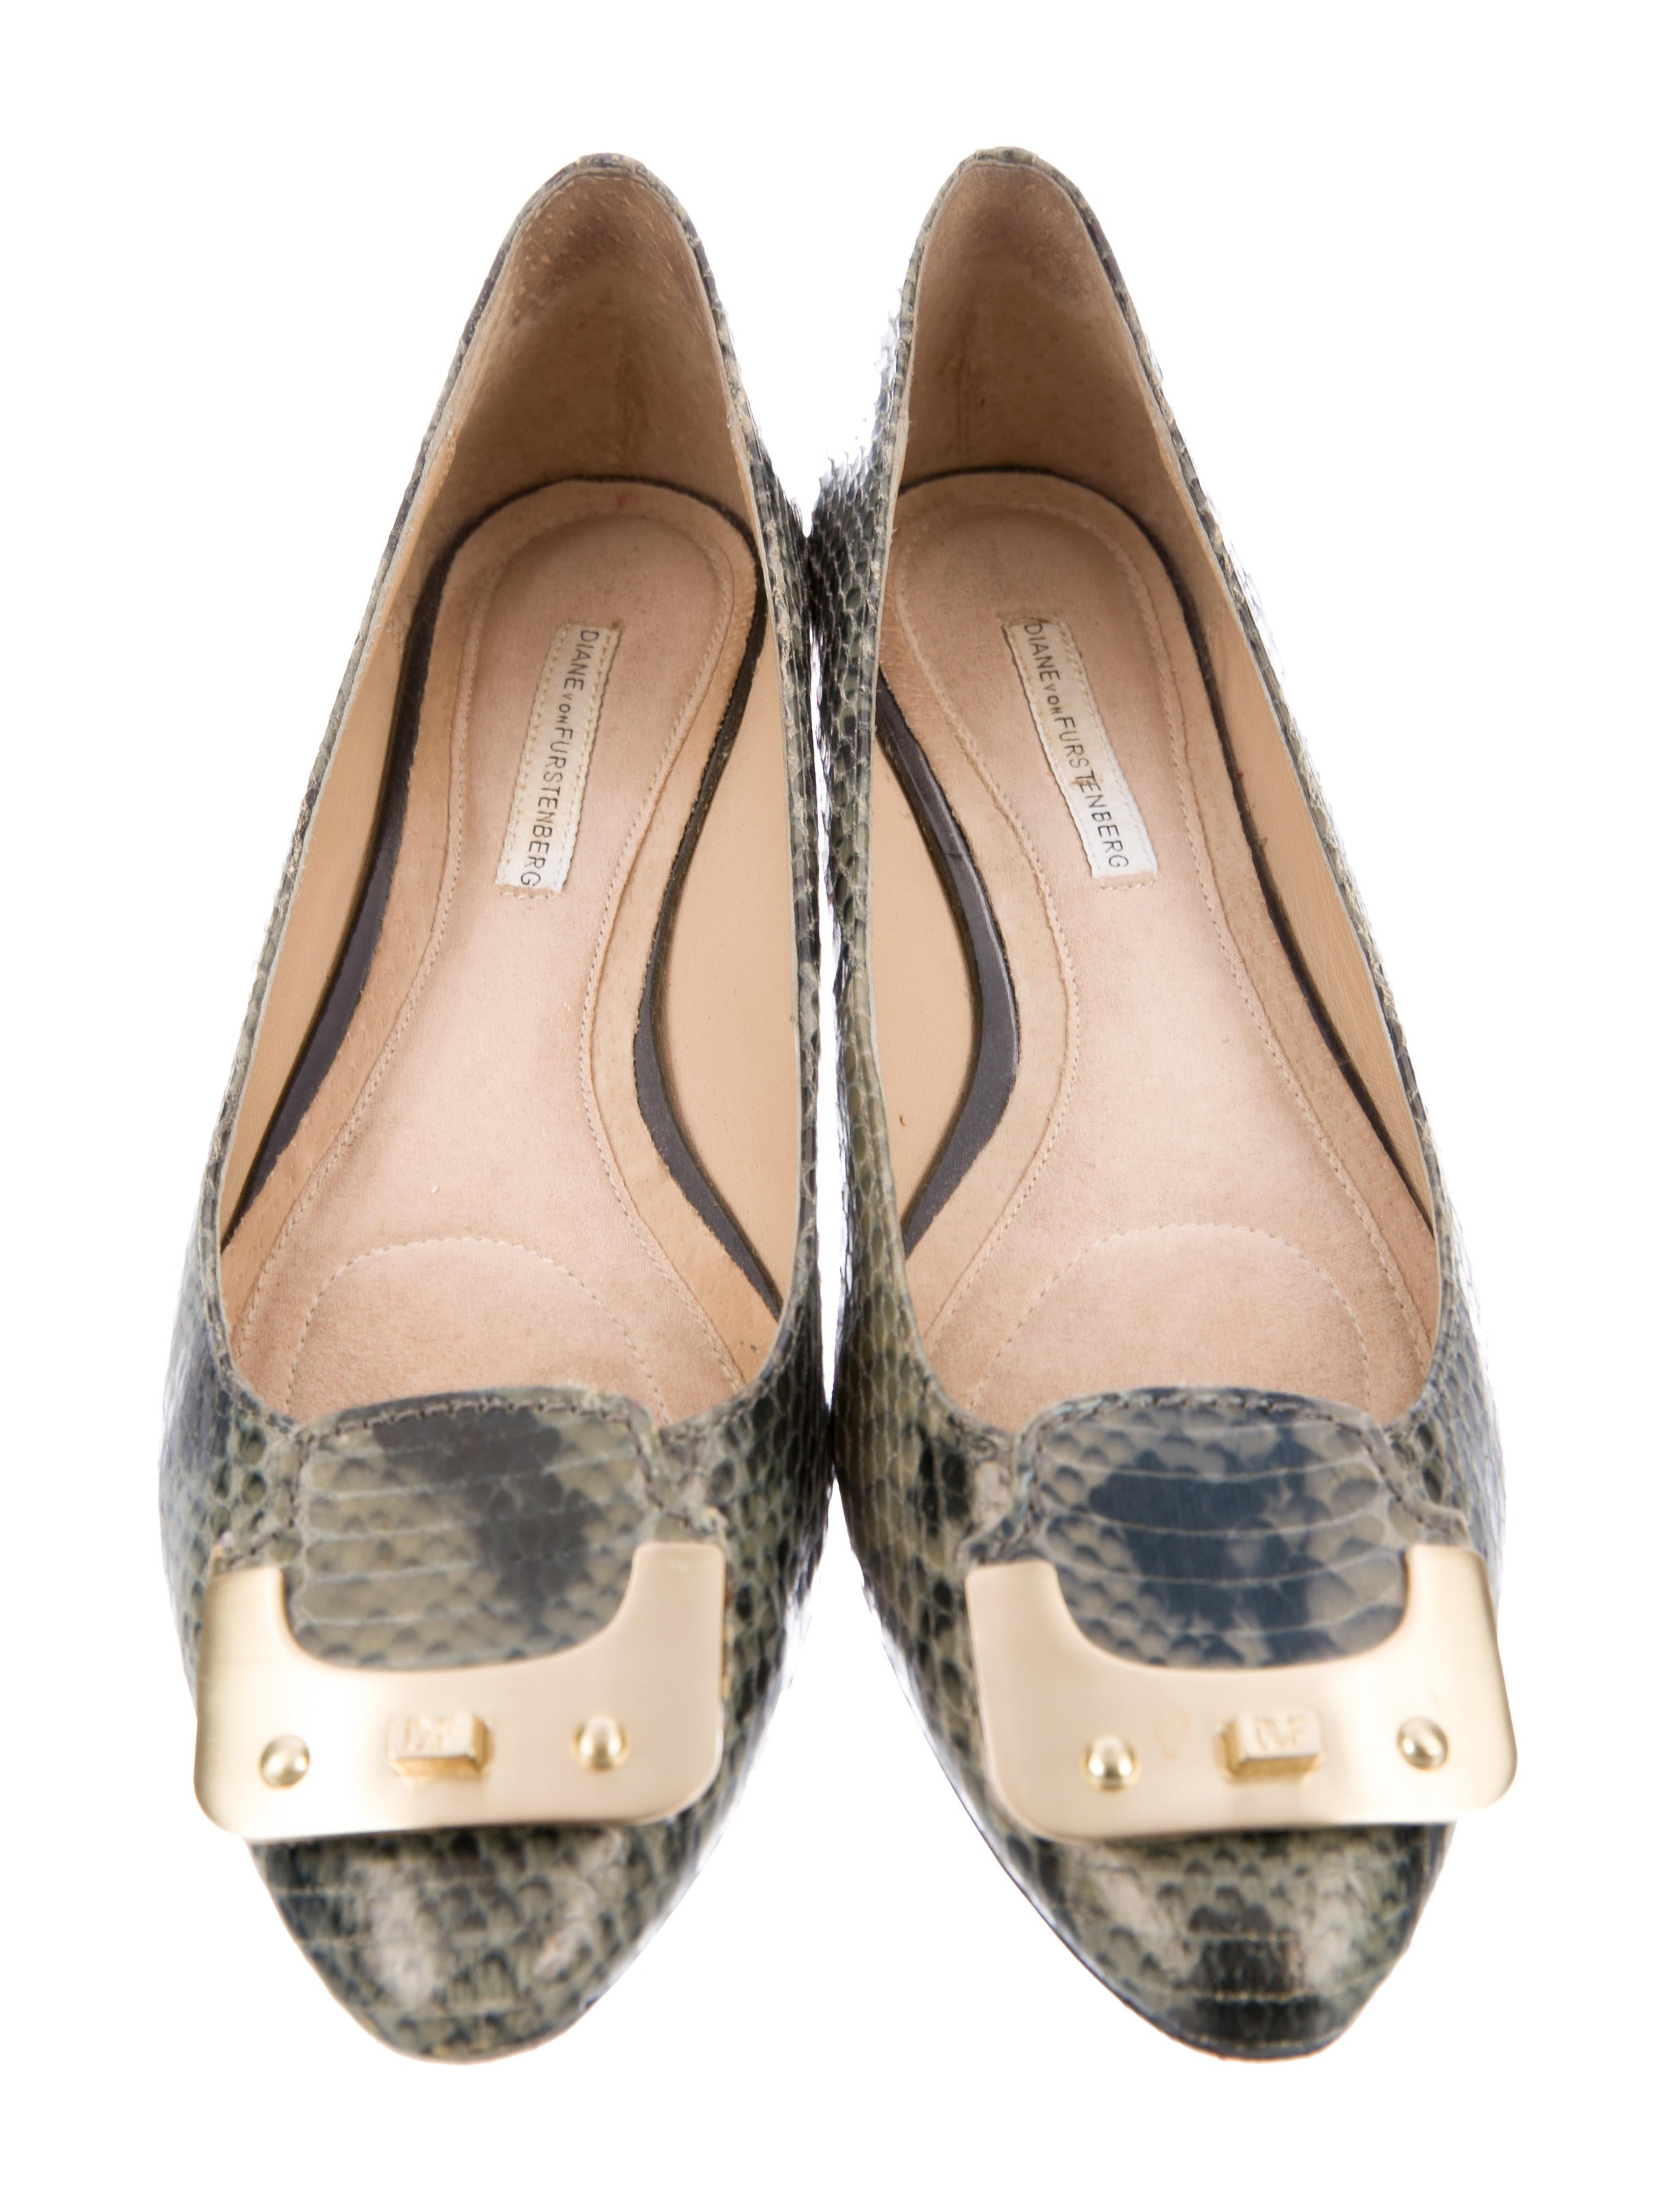 Diane von Furstenberg Embossed Round-Toe Flats sale Manchester clearance nicekicks buy cheap get to buy aAidoEH